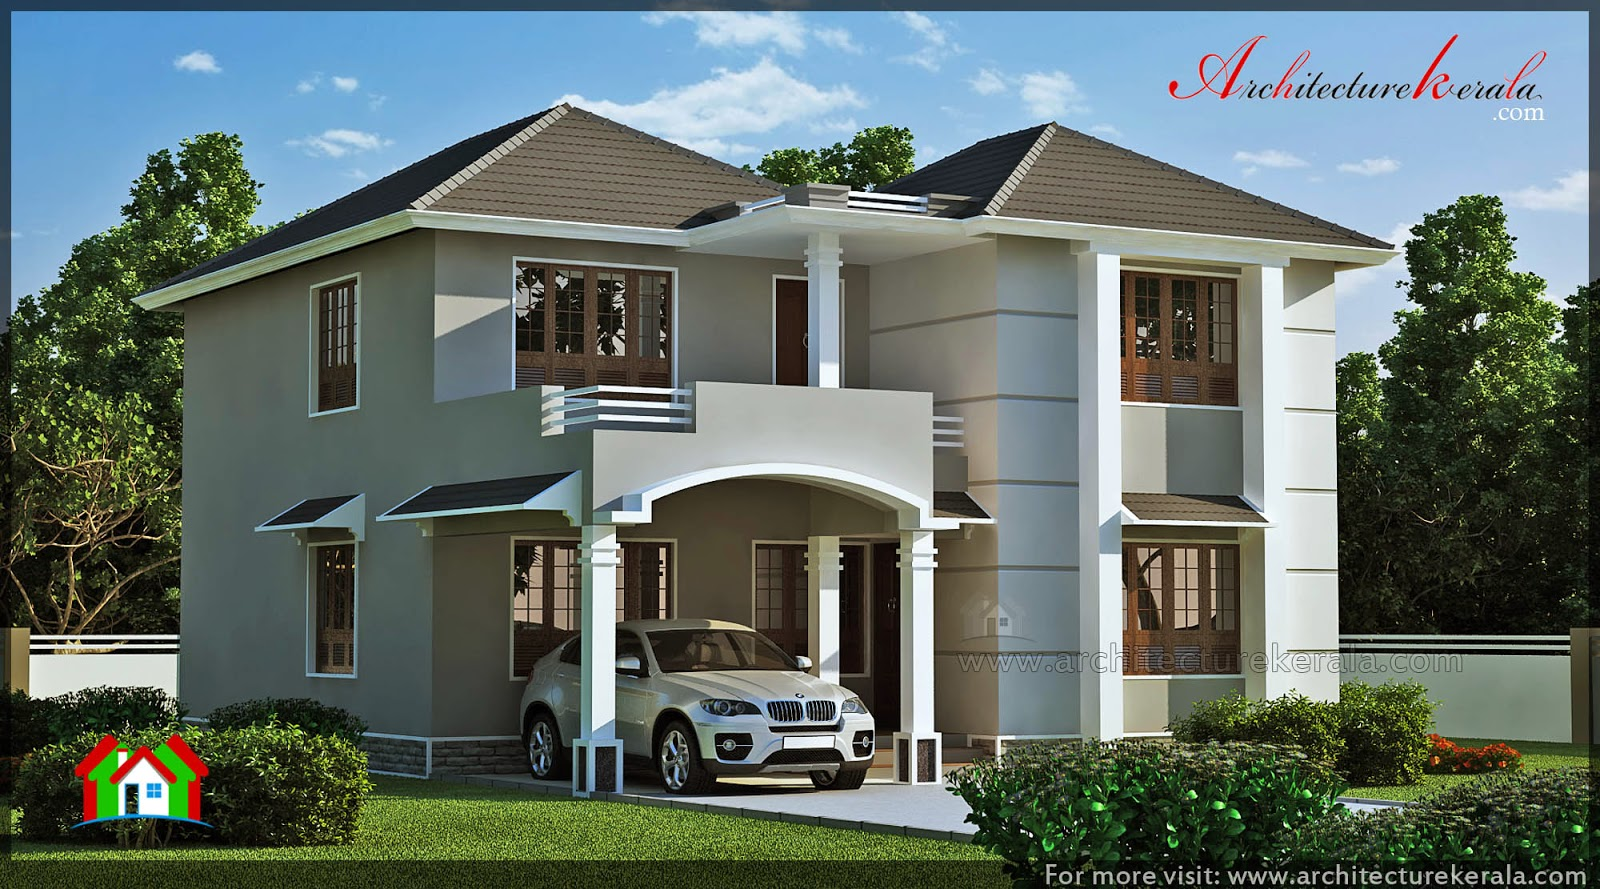 MODERN STYLE 2000 SQUARE FEET HOUSE ELEVATION